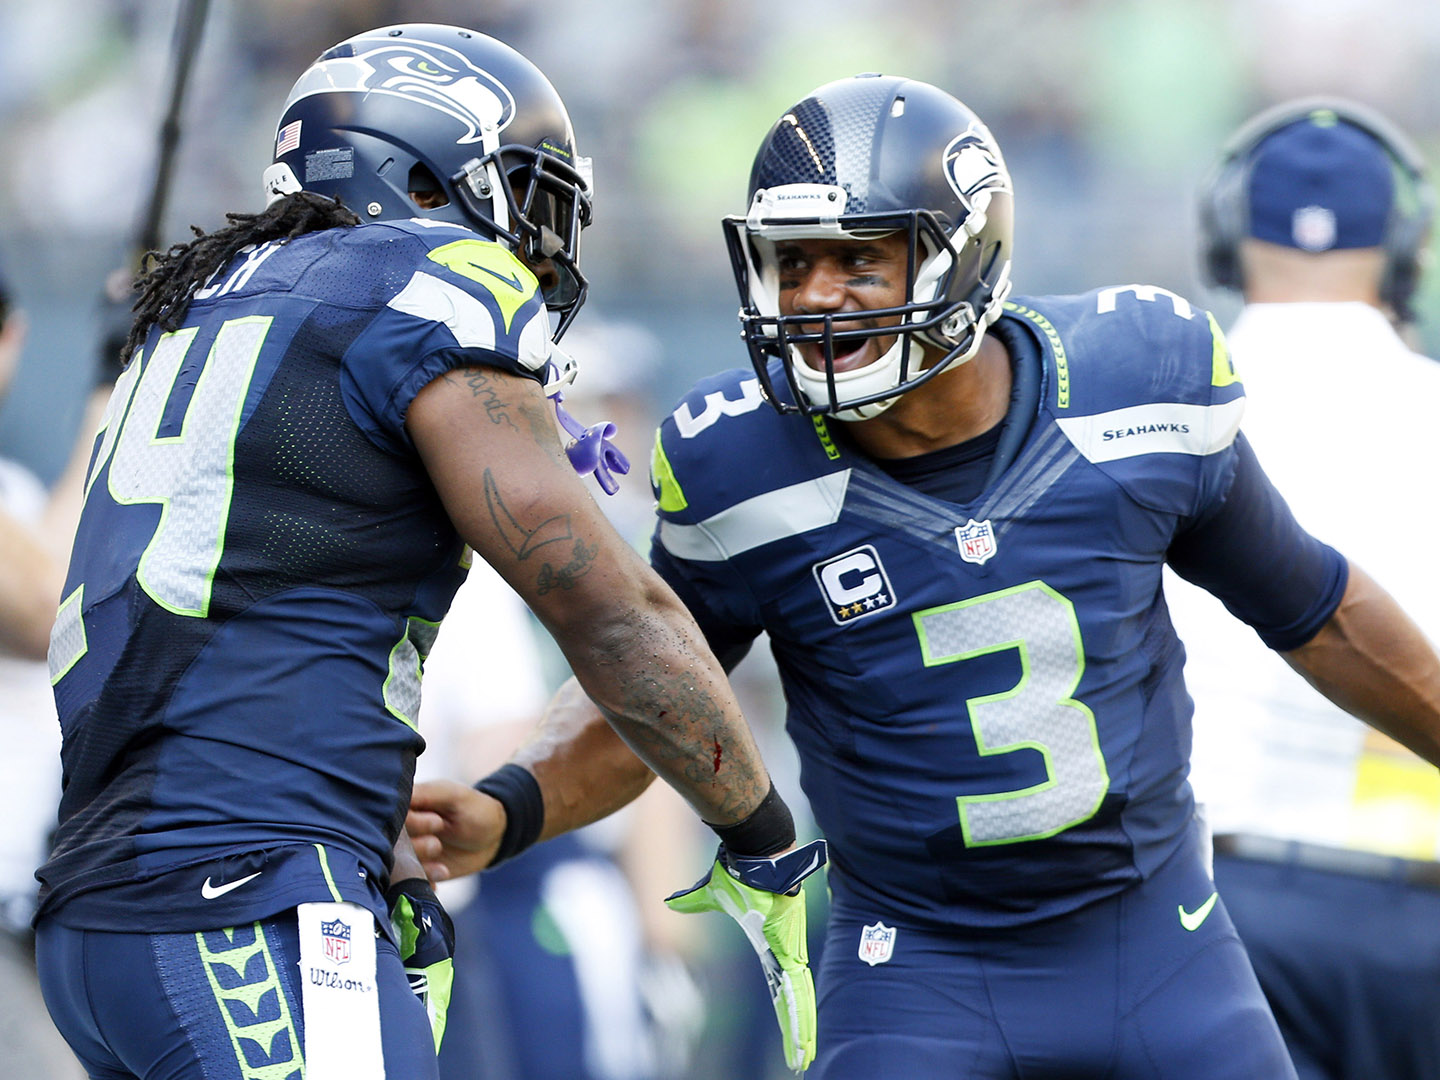 NFL power rankings: Seahawks return to top spot